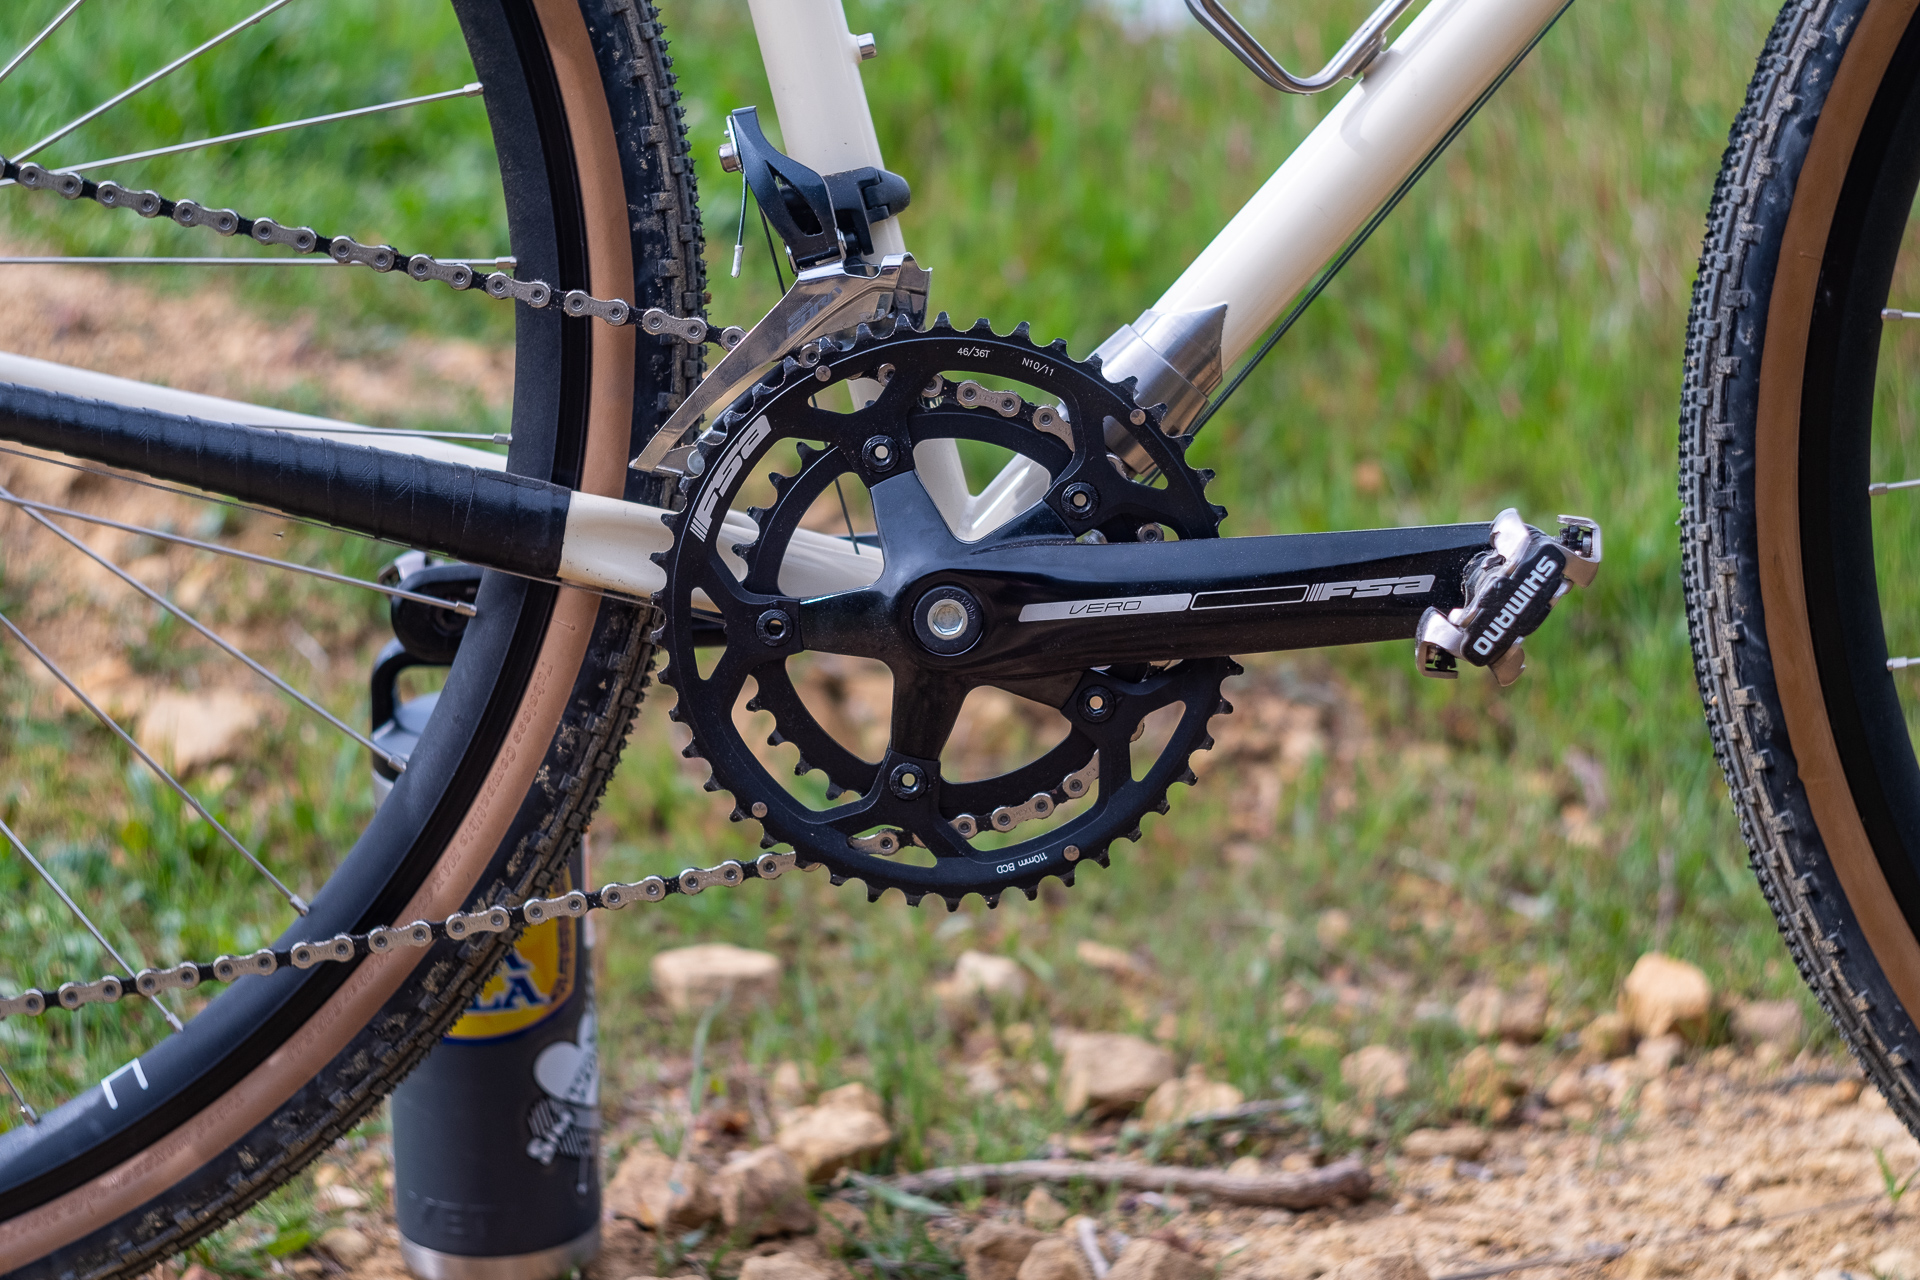 Surly Travelers Gravelers Check FSA Vero crankset detail.